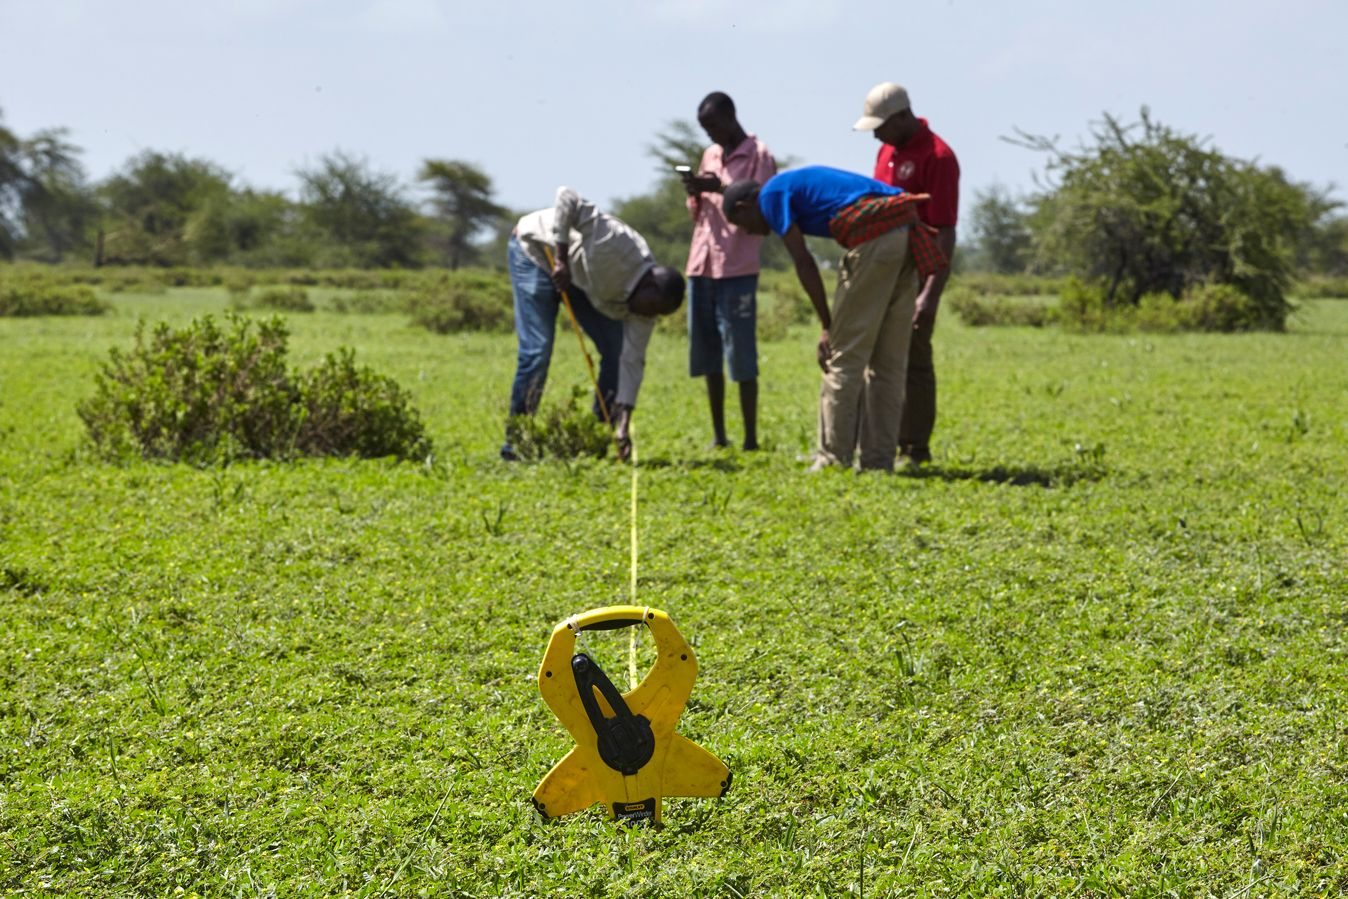 Community rangeland monitors work in a pasture in northern Tanzania